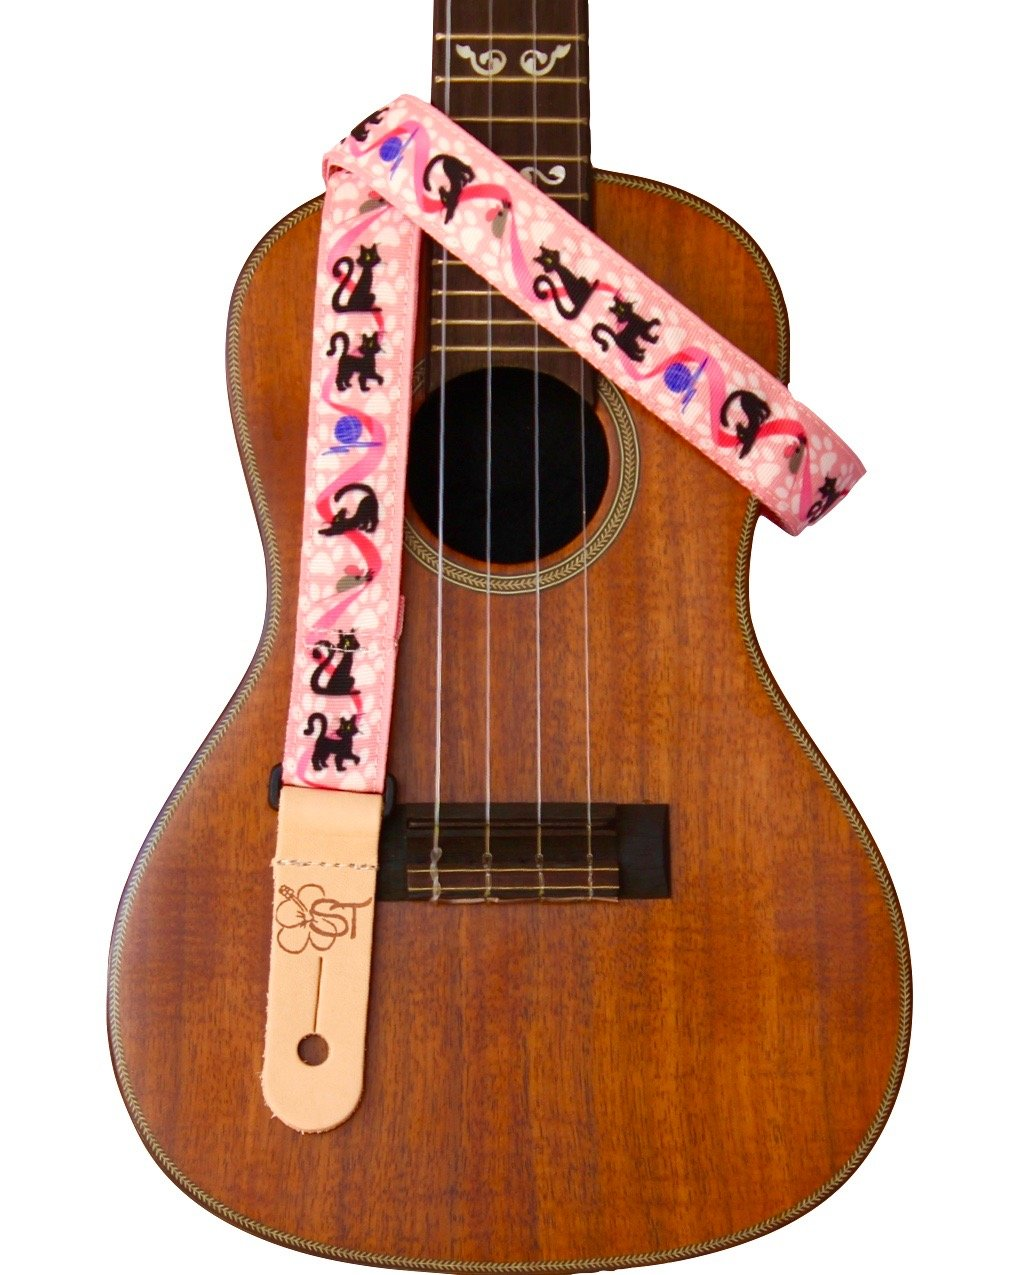 Sherrin's Threads 1 Ukulele Strap - Cats on Pink